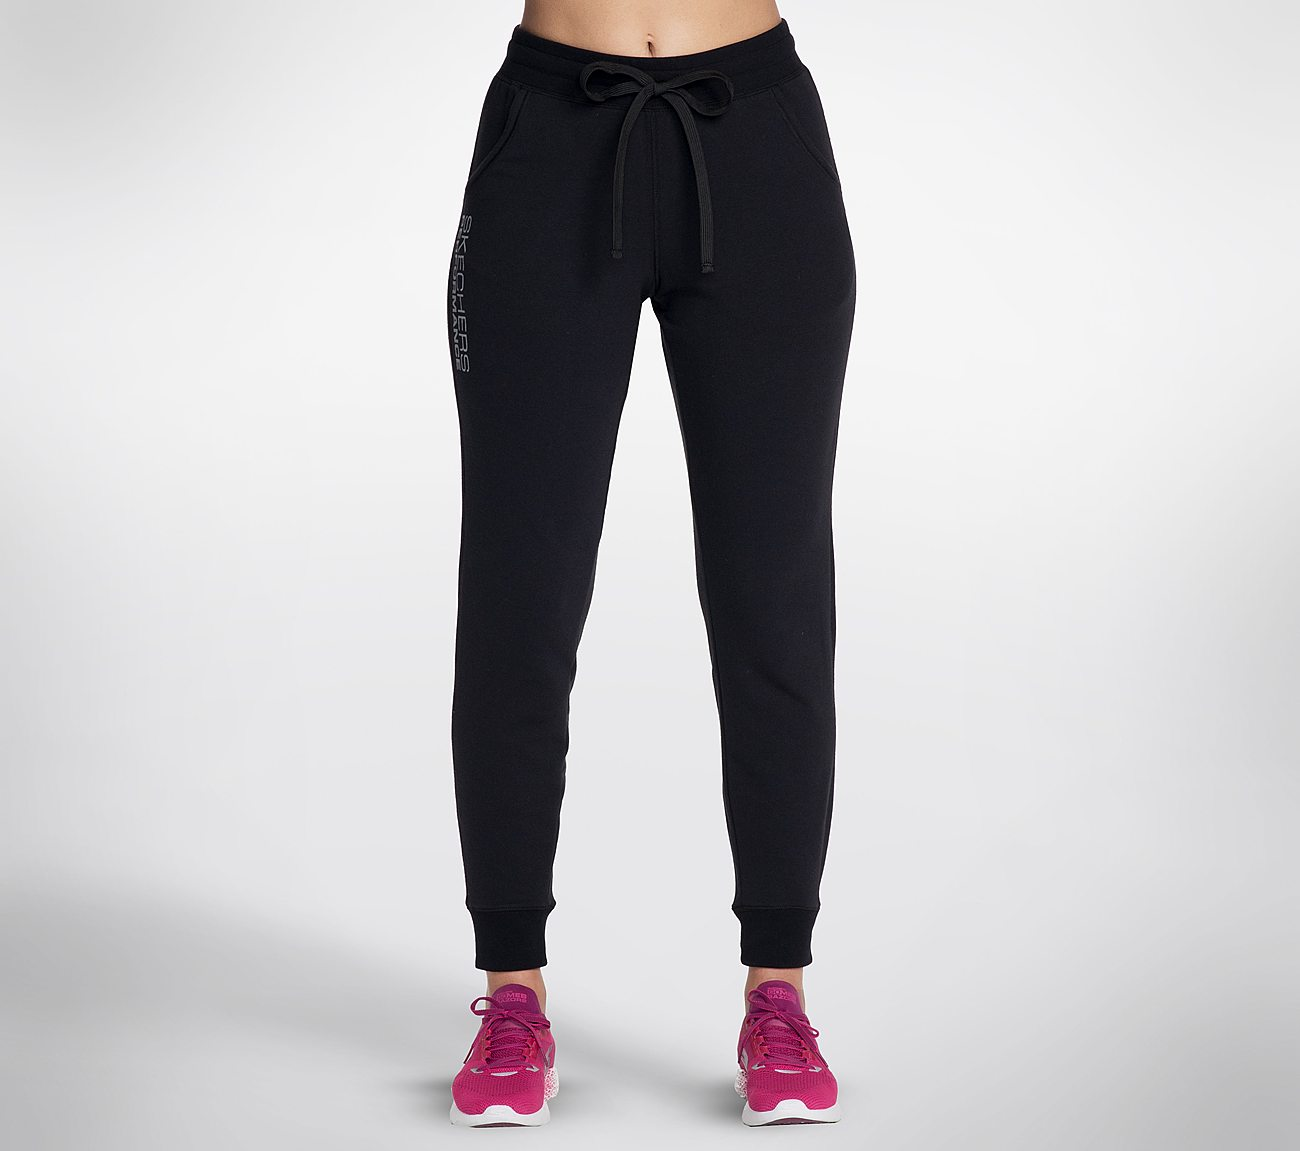 Skechers Stronger Cropped Jogger Pant